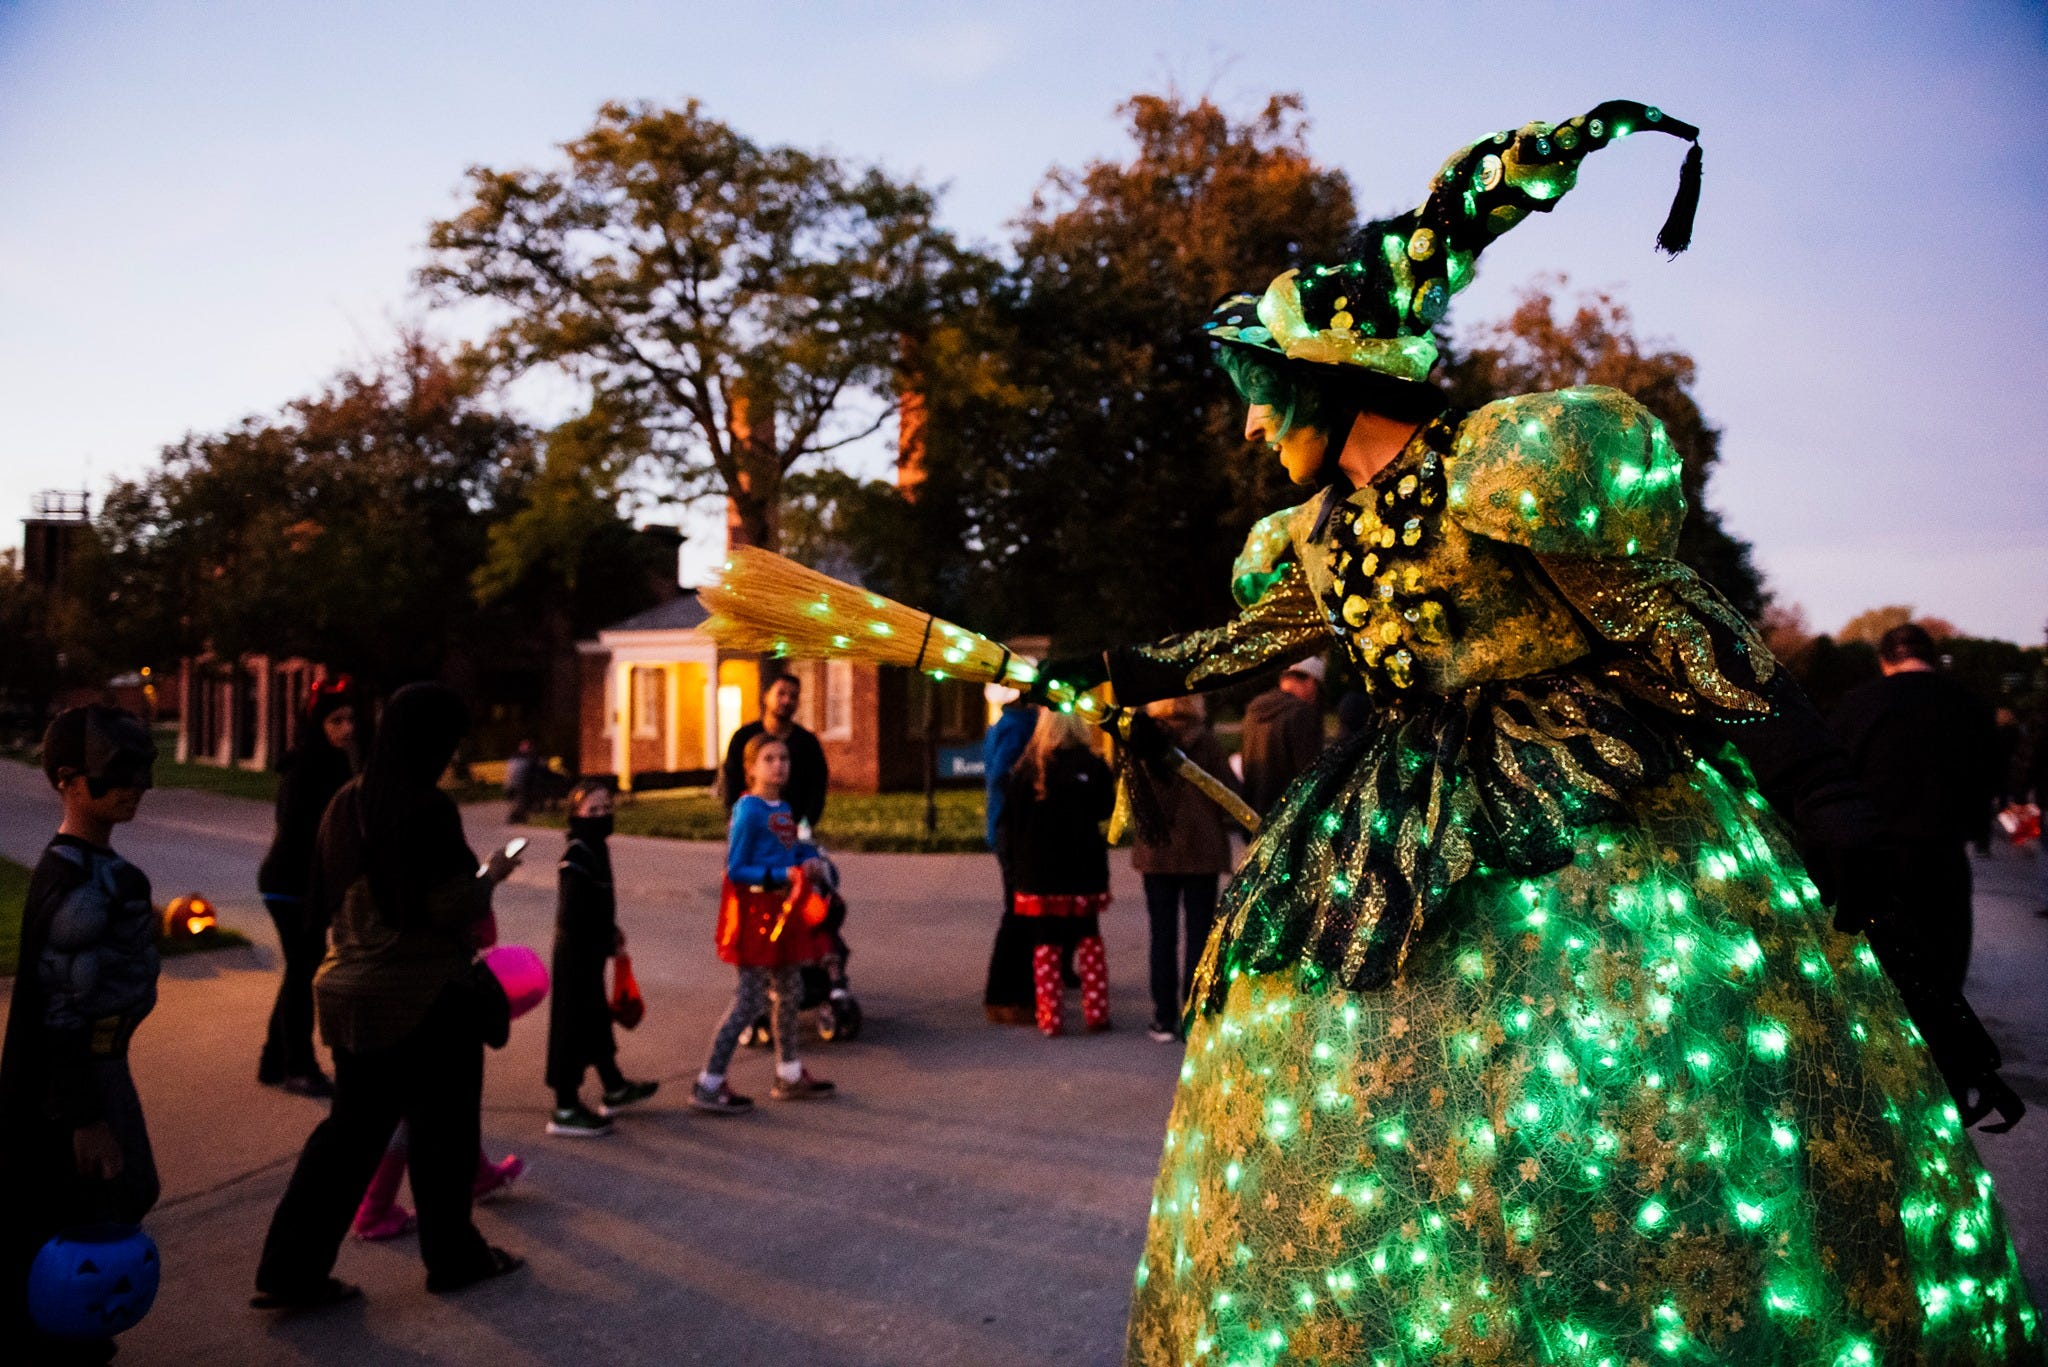 Halloween Greenfield Village 2020 Annual Hallowe'en at Greenfield Village is happening, with some